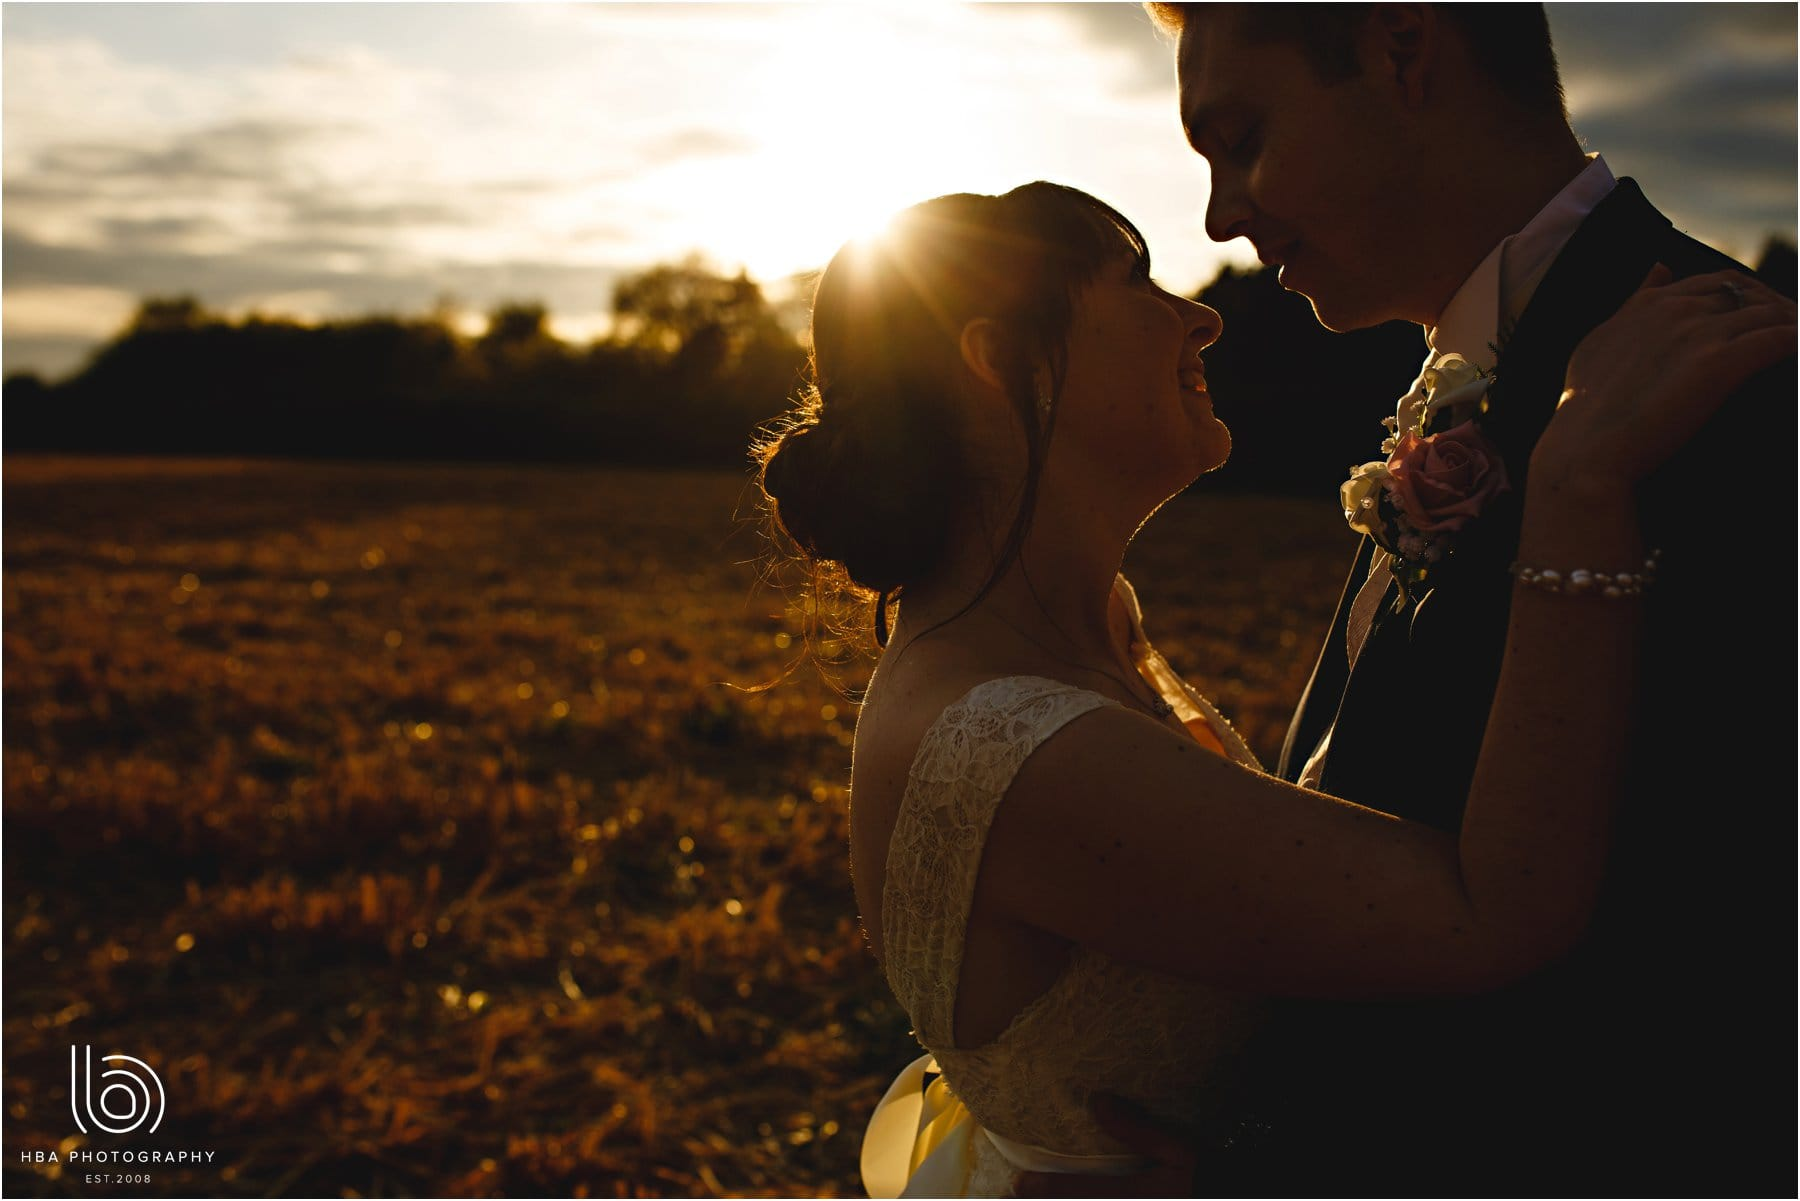 the bride and groom in the golden hour sun